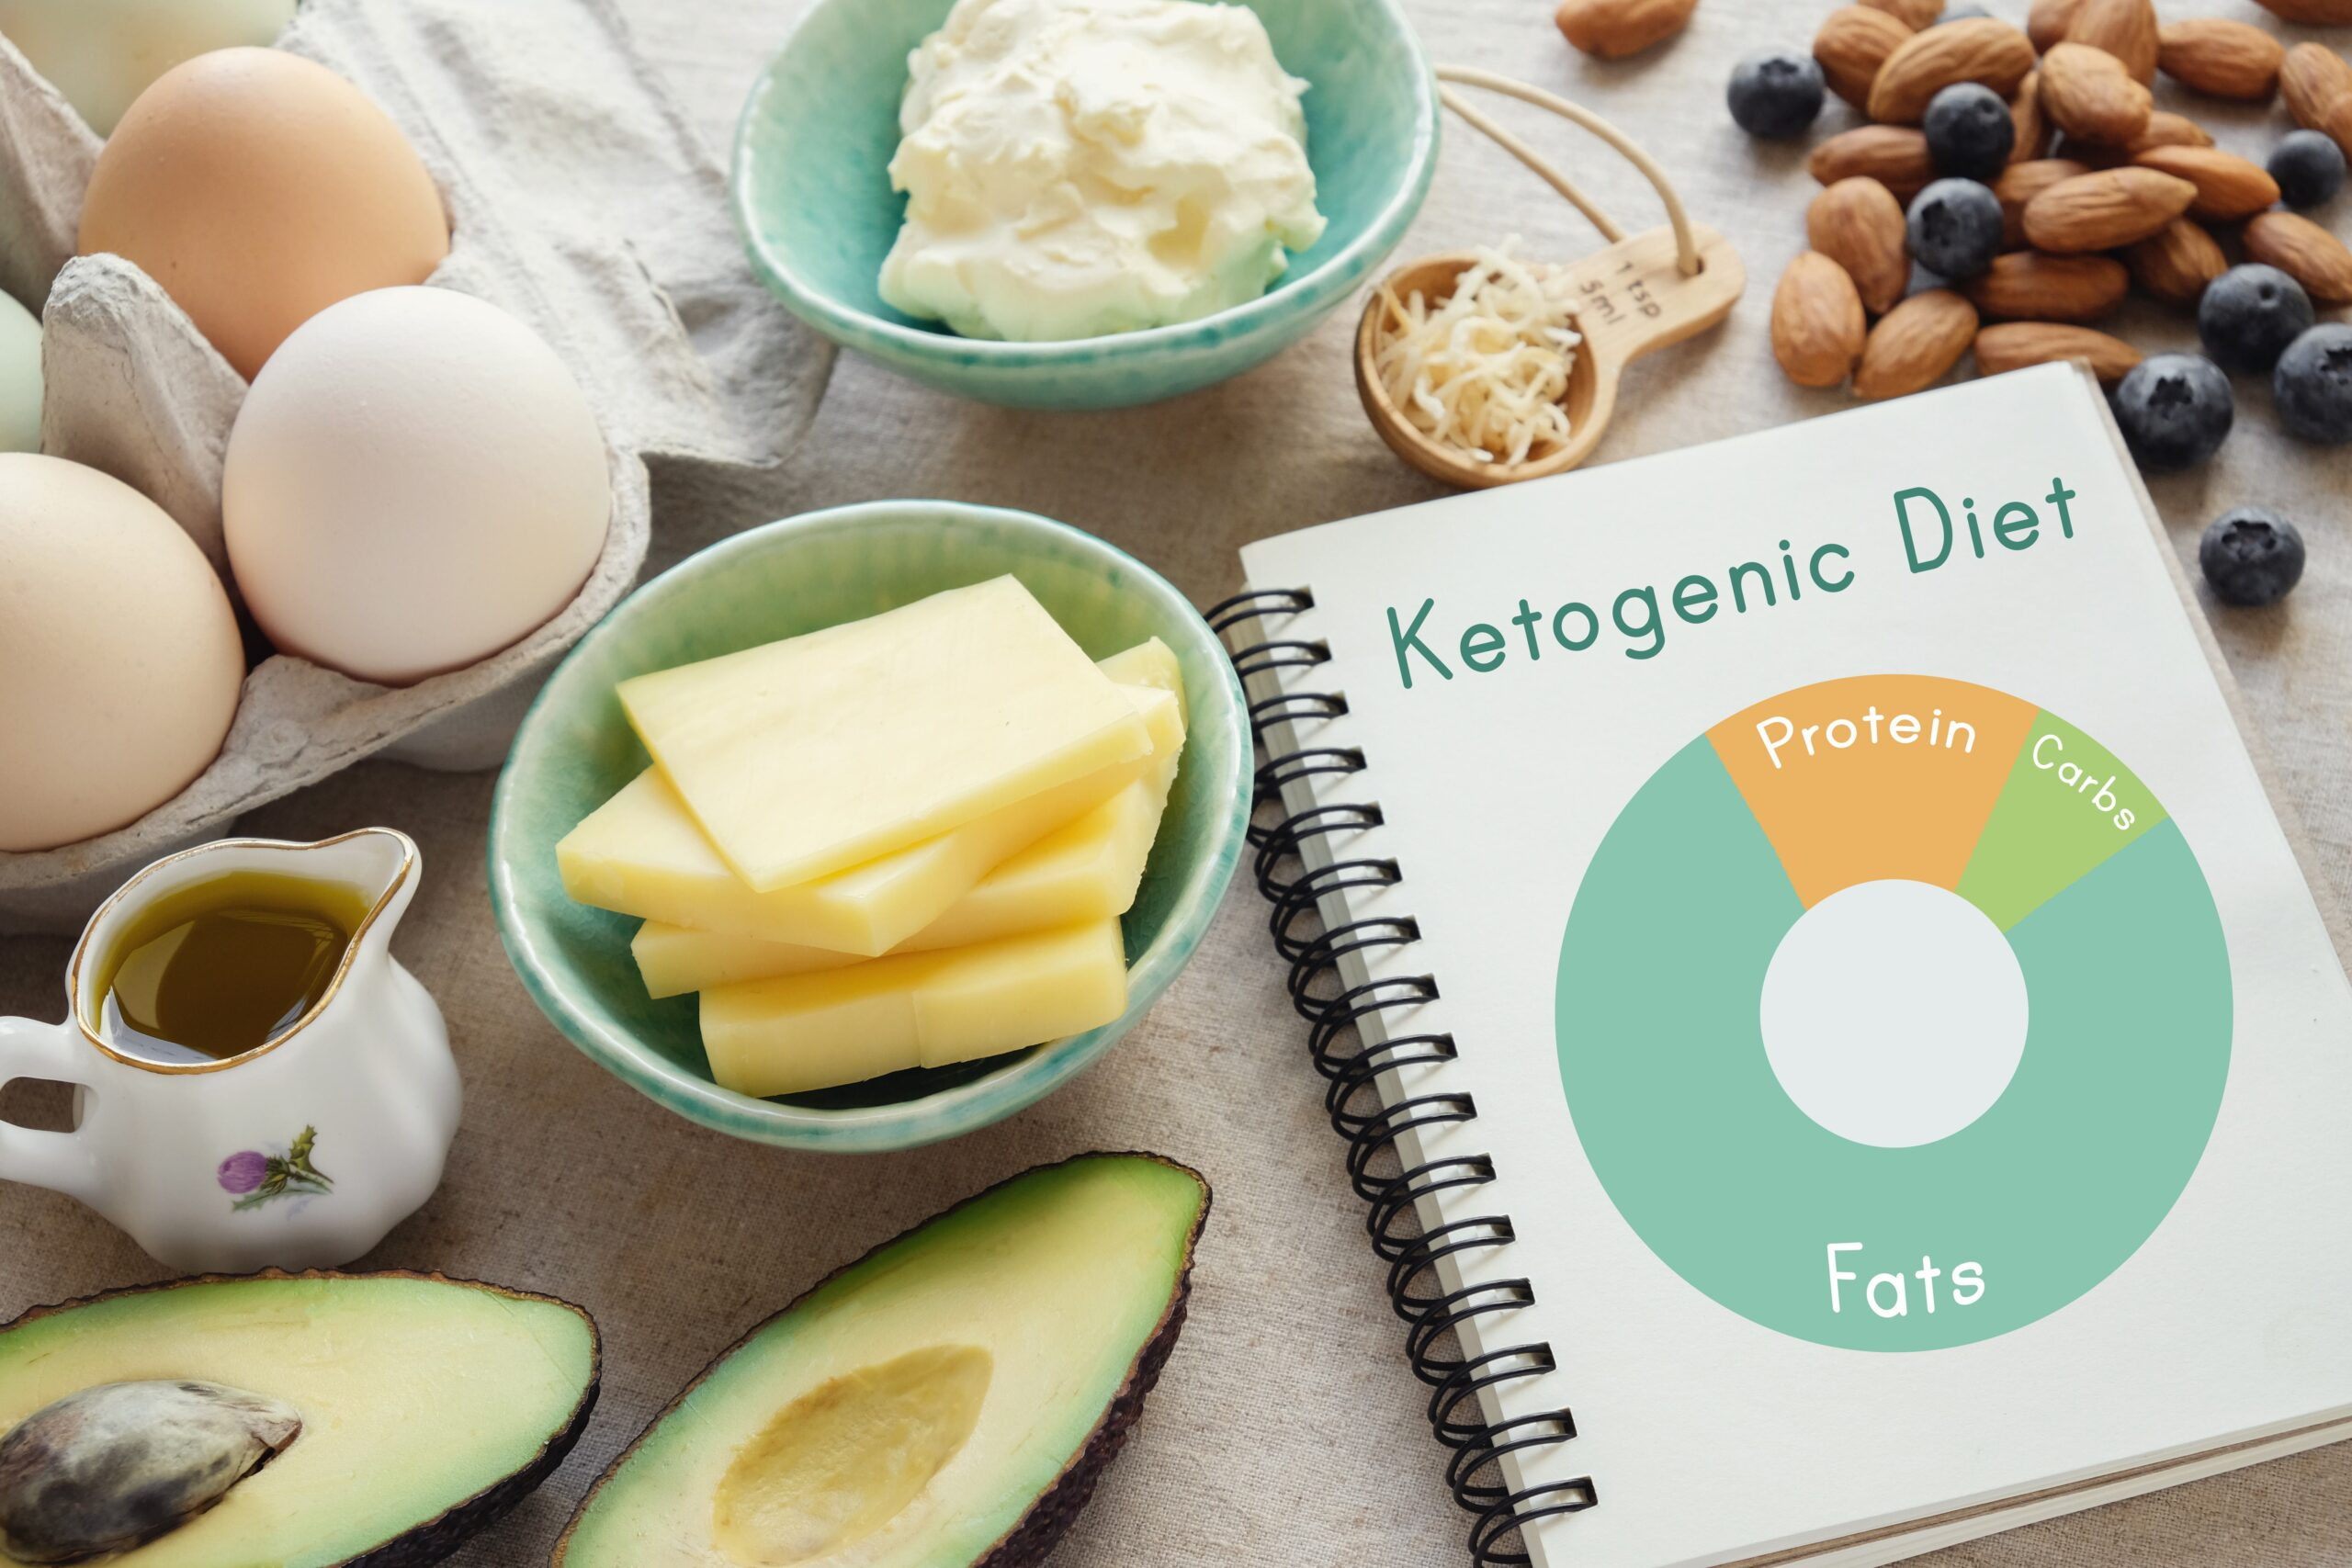 Diet Review: Ketogenic Diet for Weight Loss